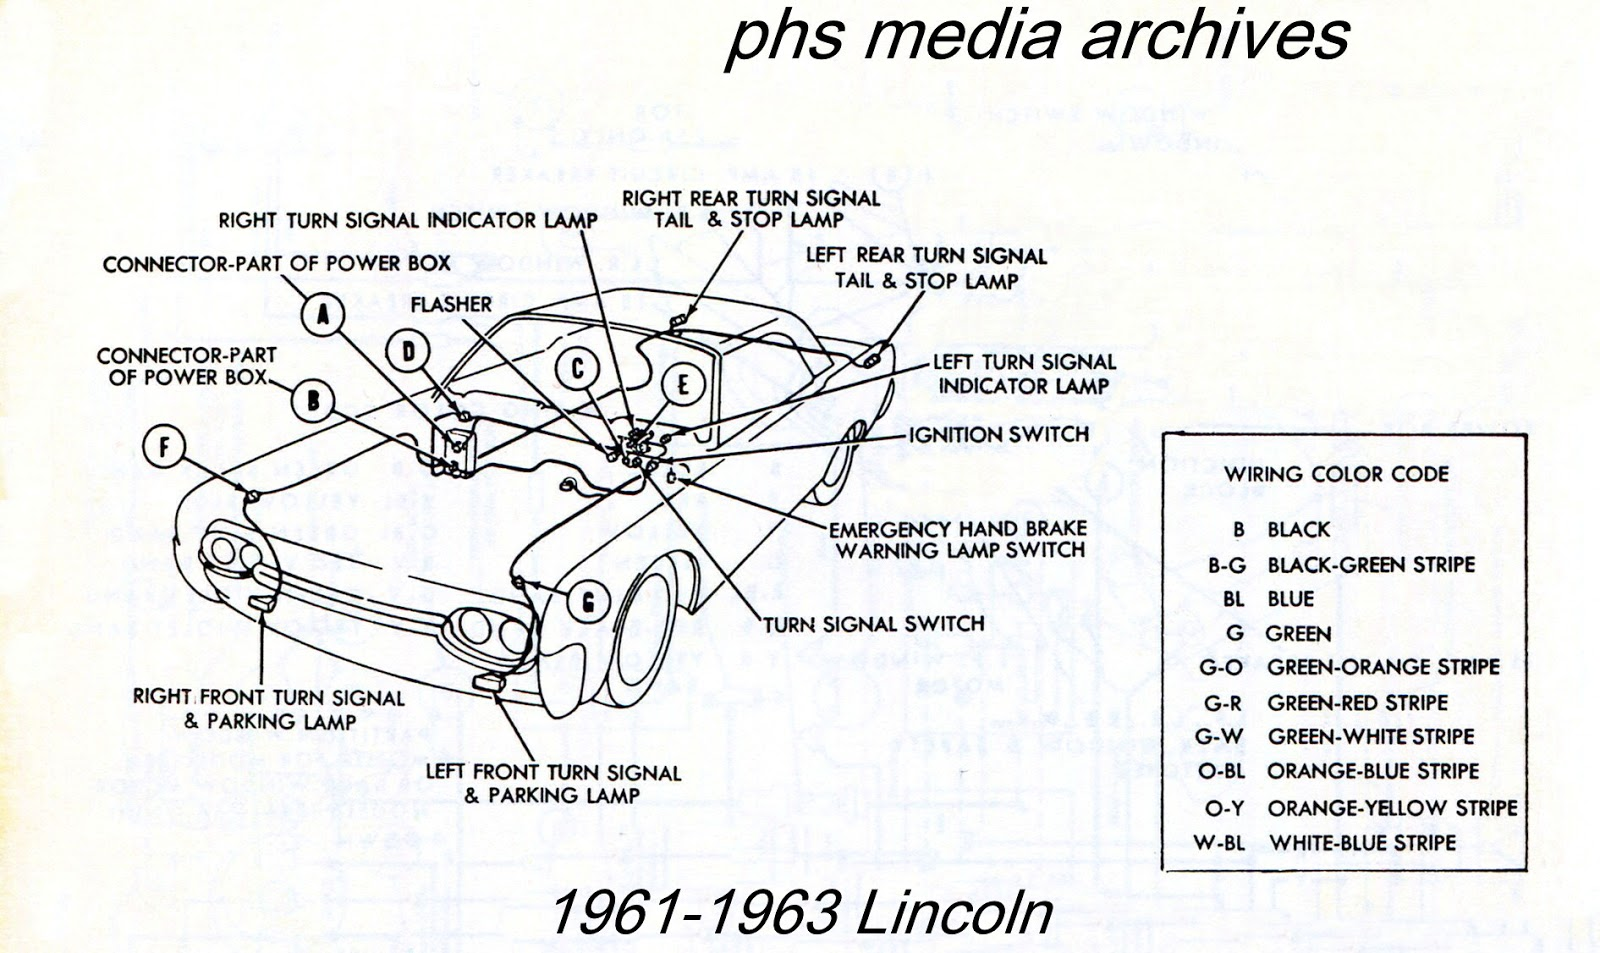 tech series 1960 1964 lincoln wiring diagrams phscollectorcarworld rh phscollectorcarworld blogspot com 1998 lincoln navigator wiring diagram lincoln  [ 1600 x 953 Pixel ]